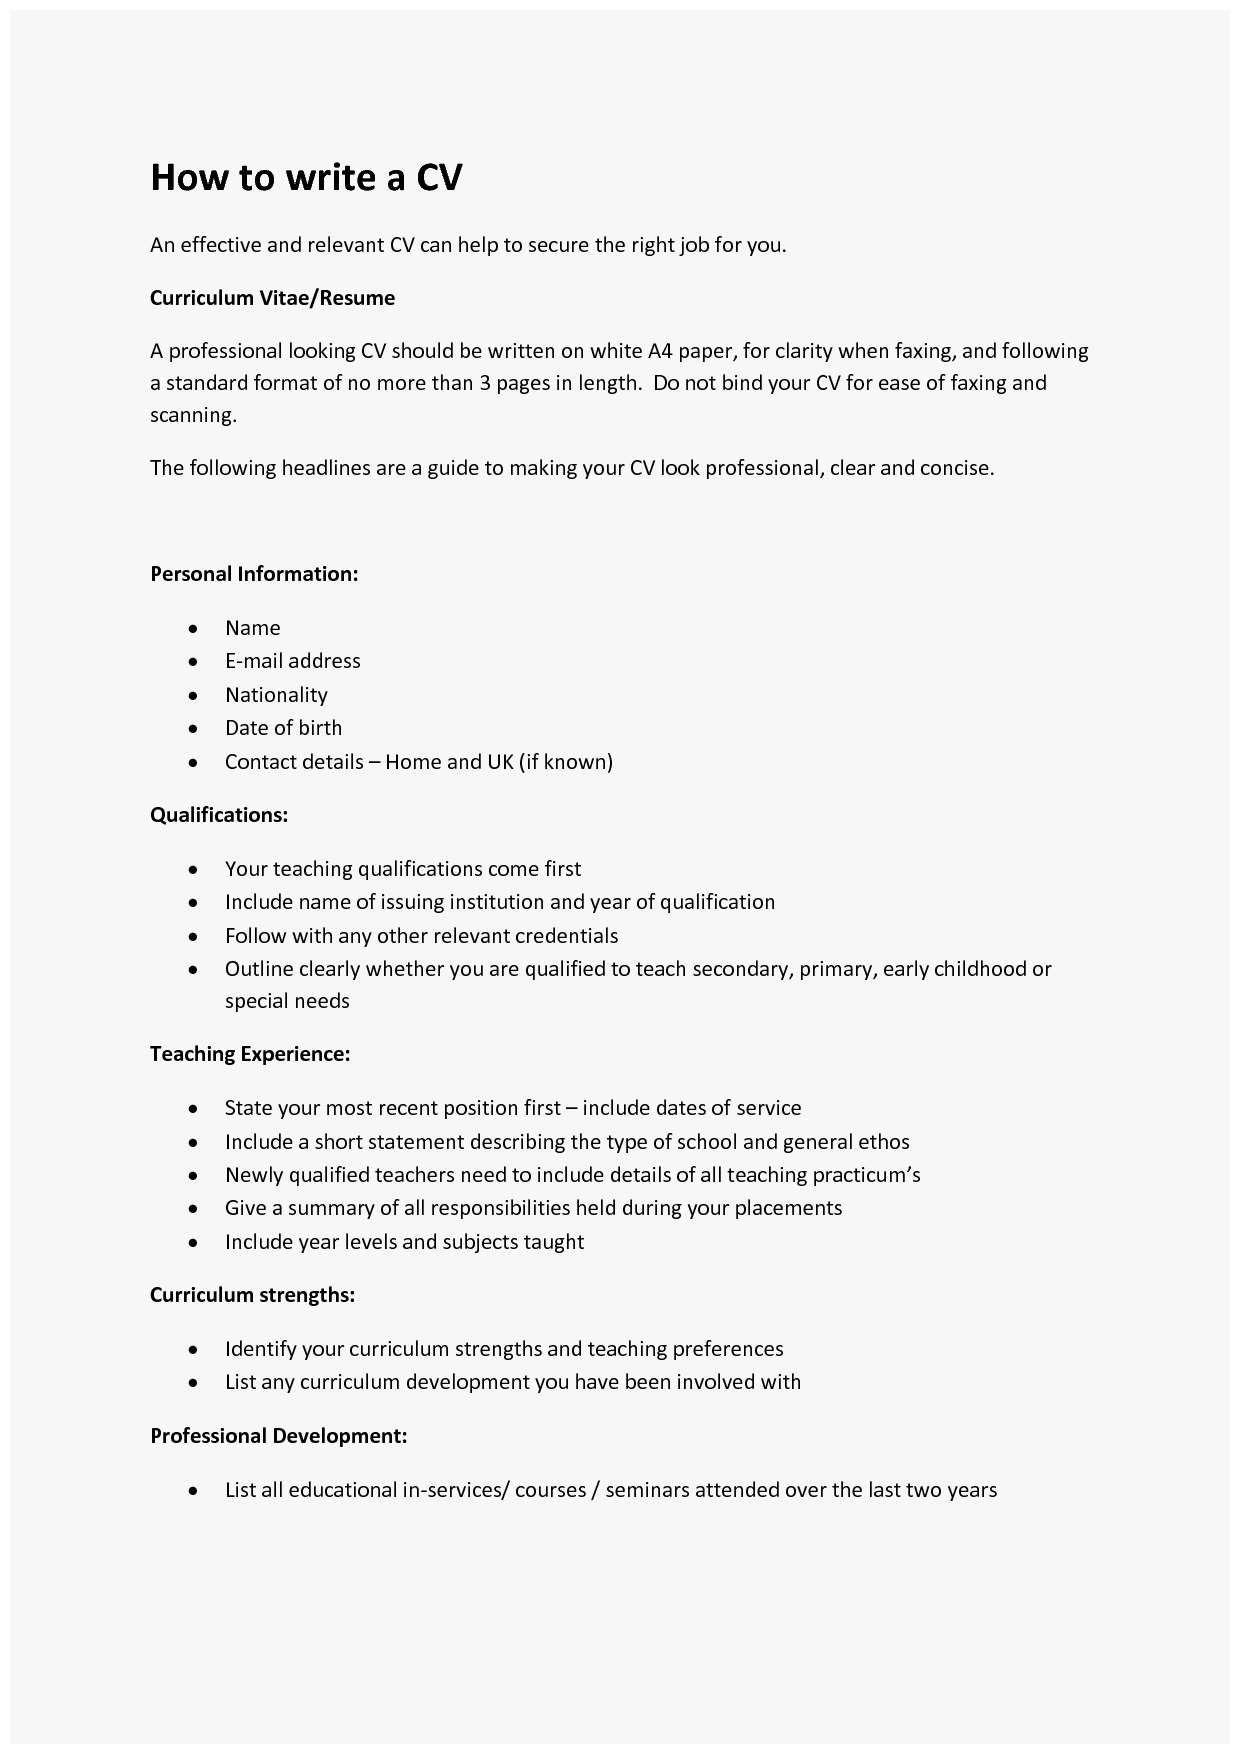 How To Type A Resume How To Type Up A Resume Amazing How To Write A Cv Of How To Type Up A Resume how to type a resume|wikiresume.com